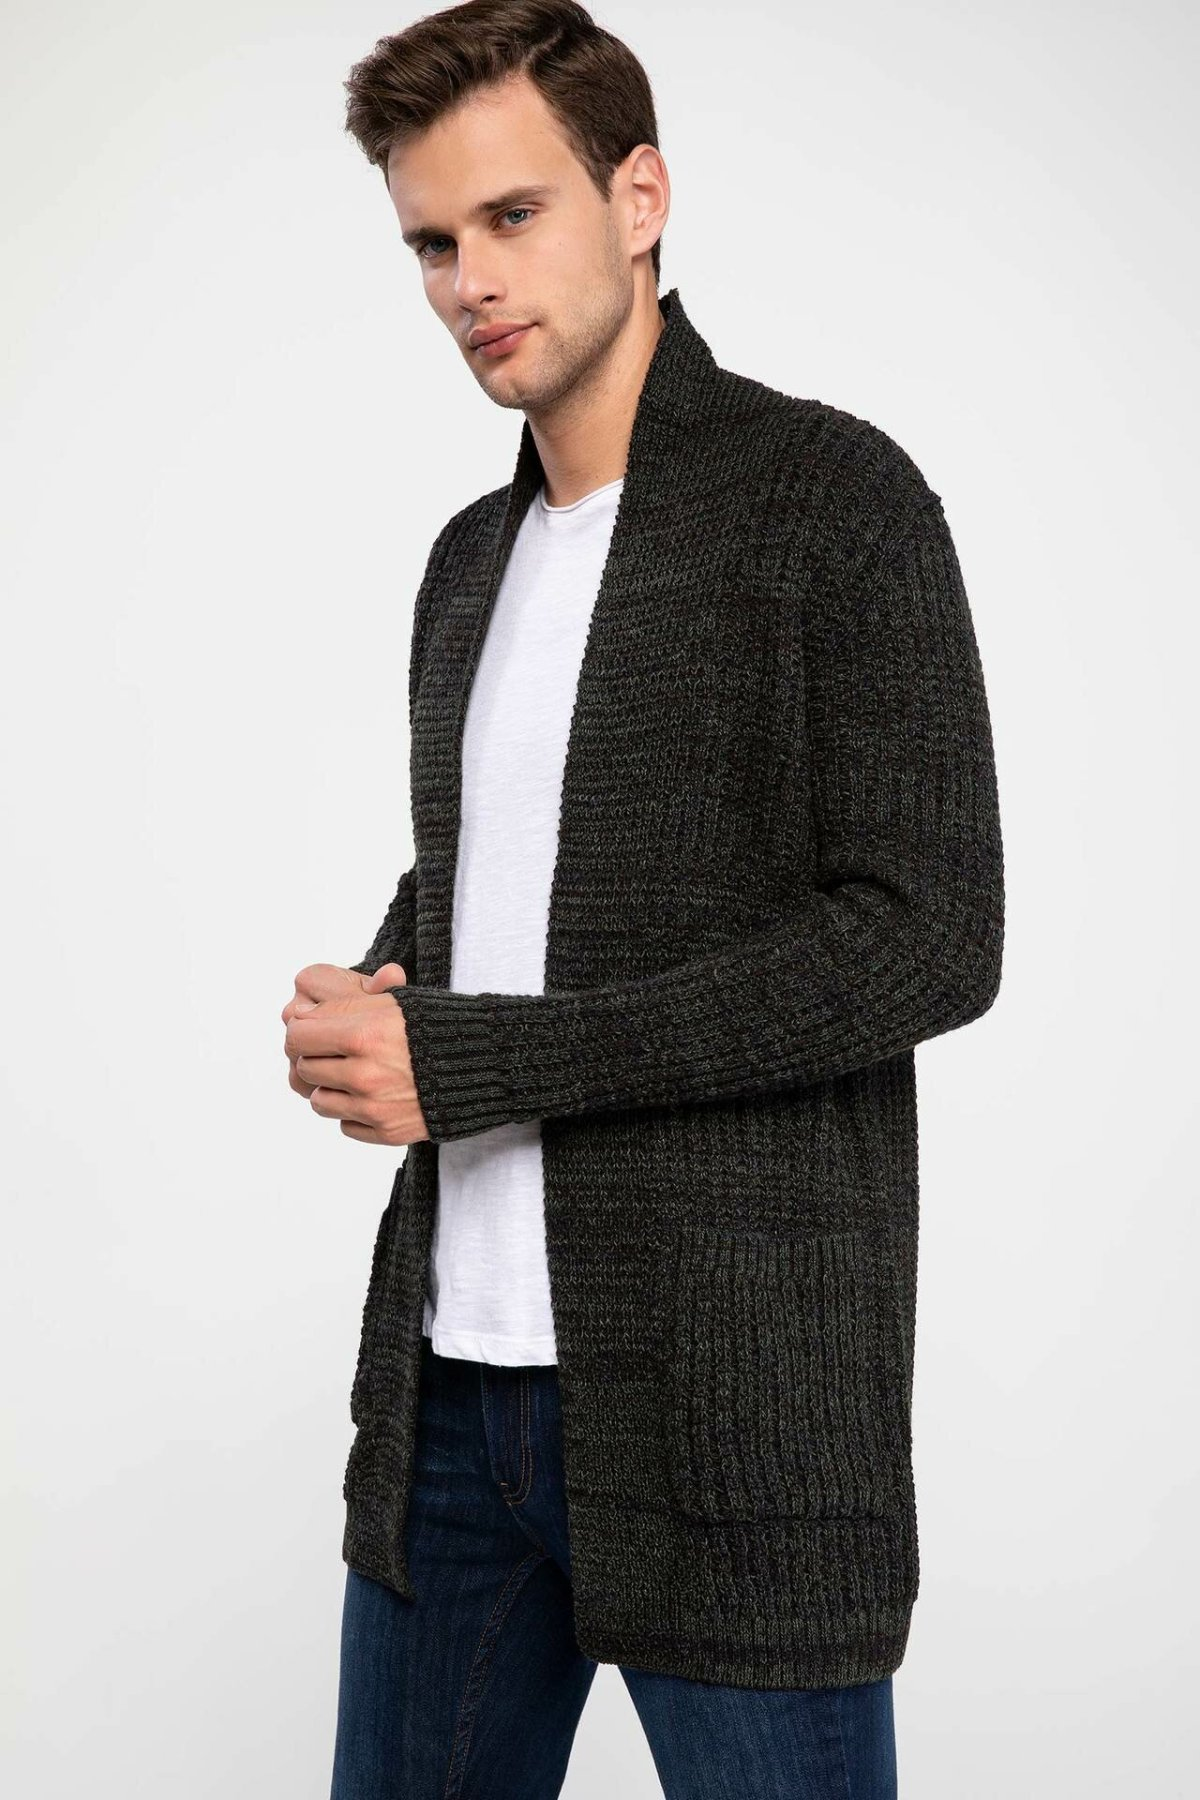 DeFacto Fashion Lapel Man Knitted Cardigan For Men's Long Sleeves Casual Warm Jackets Male Coats Autumn New - J3111AZ18AU